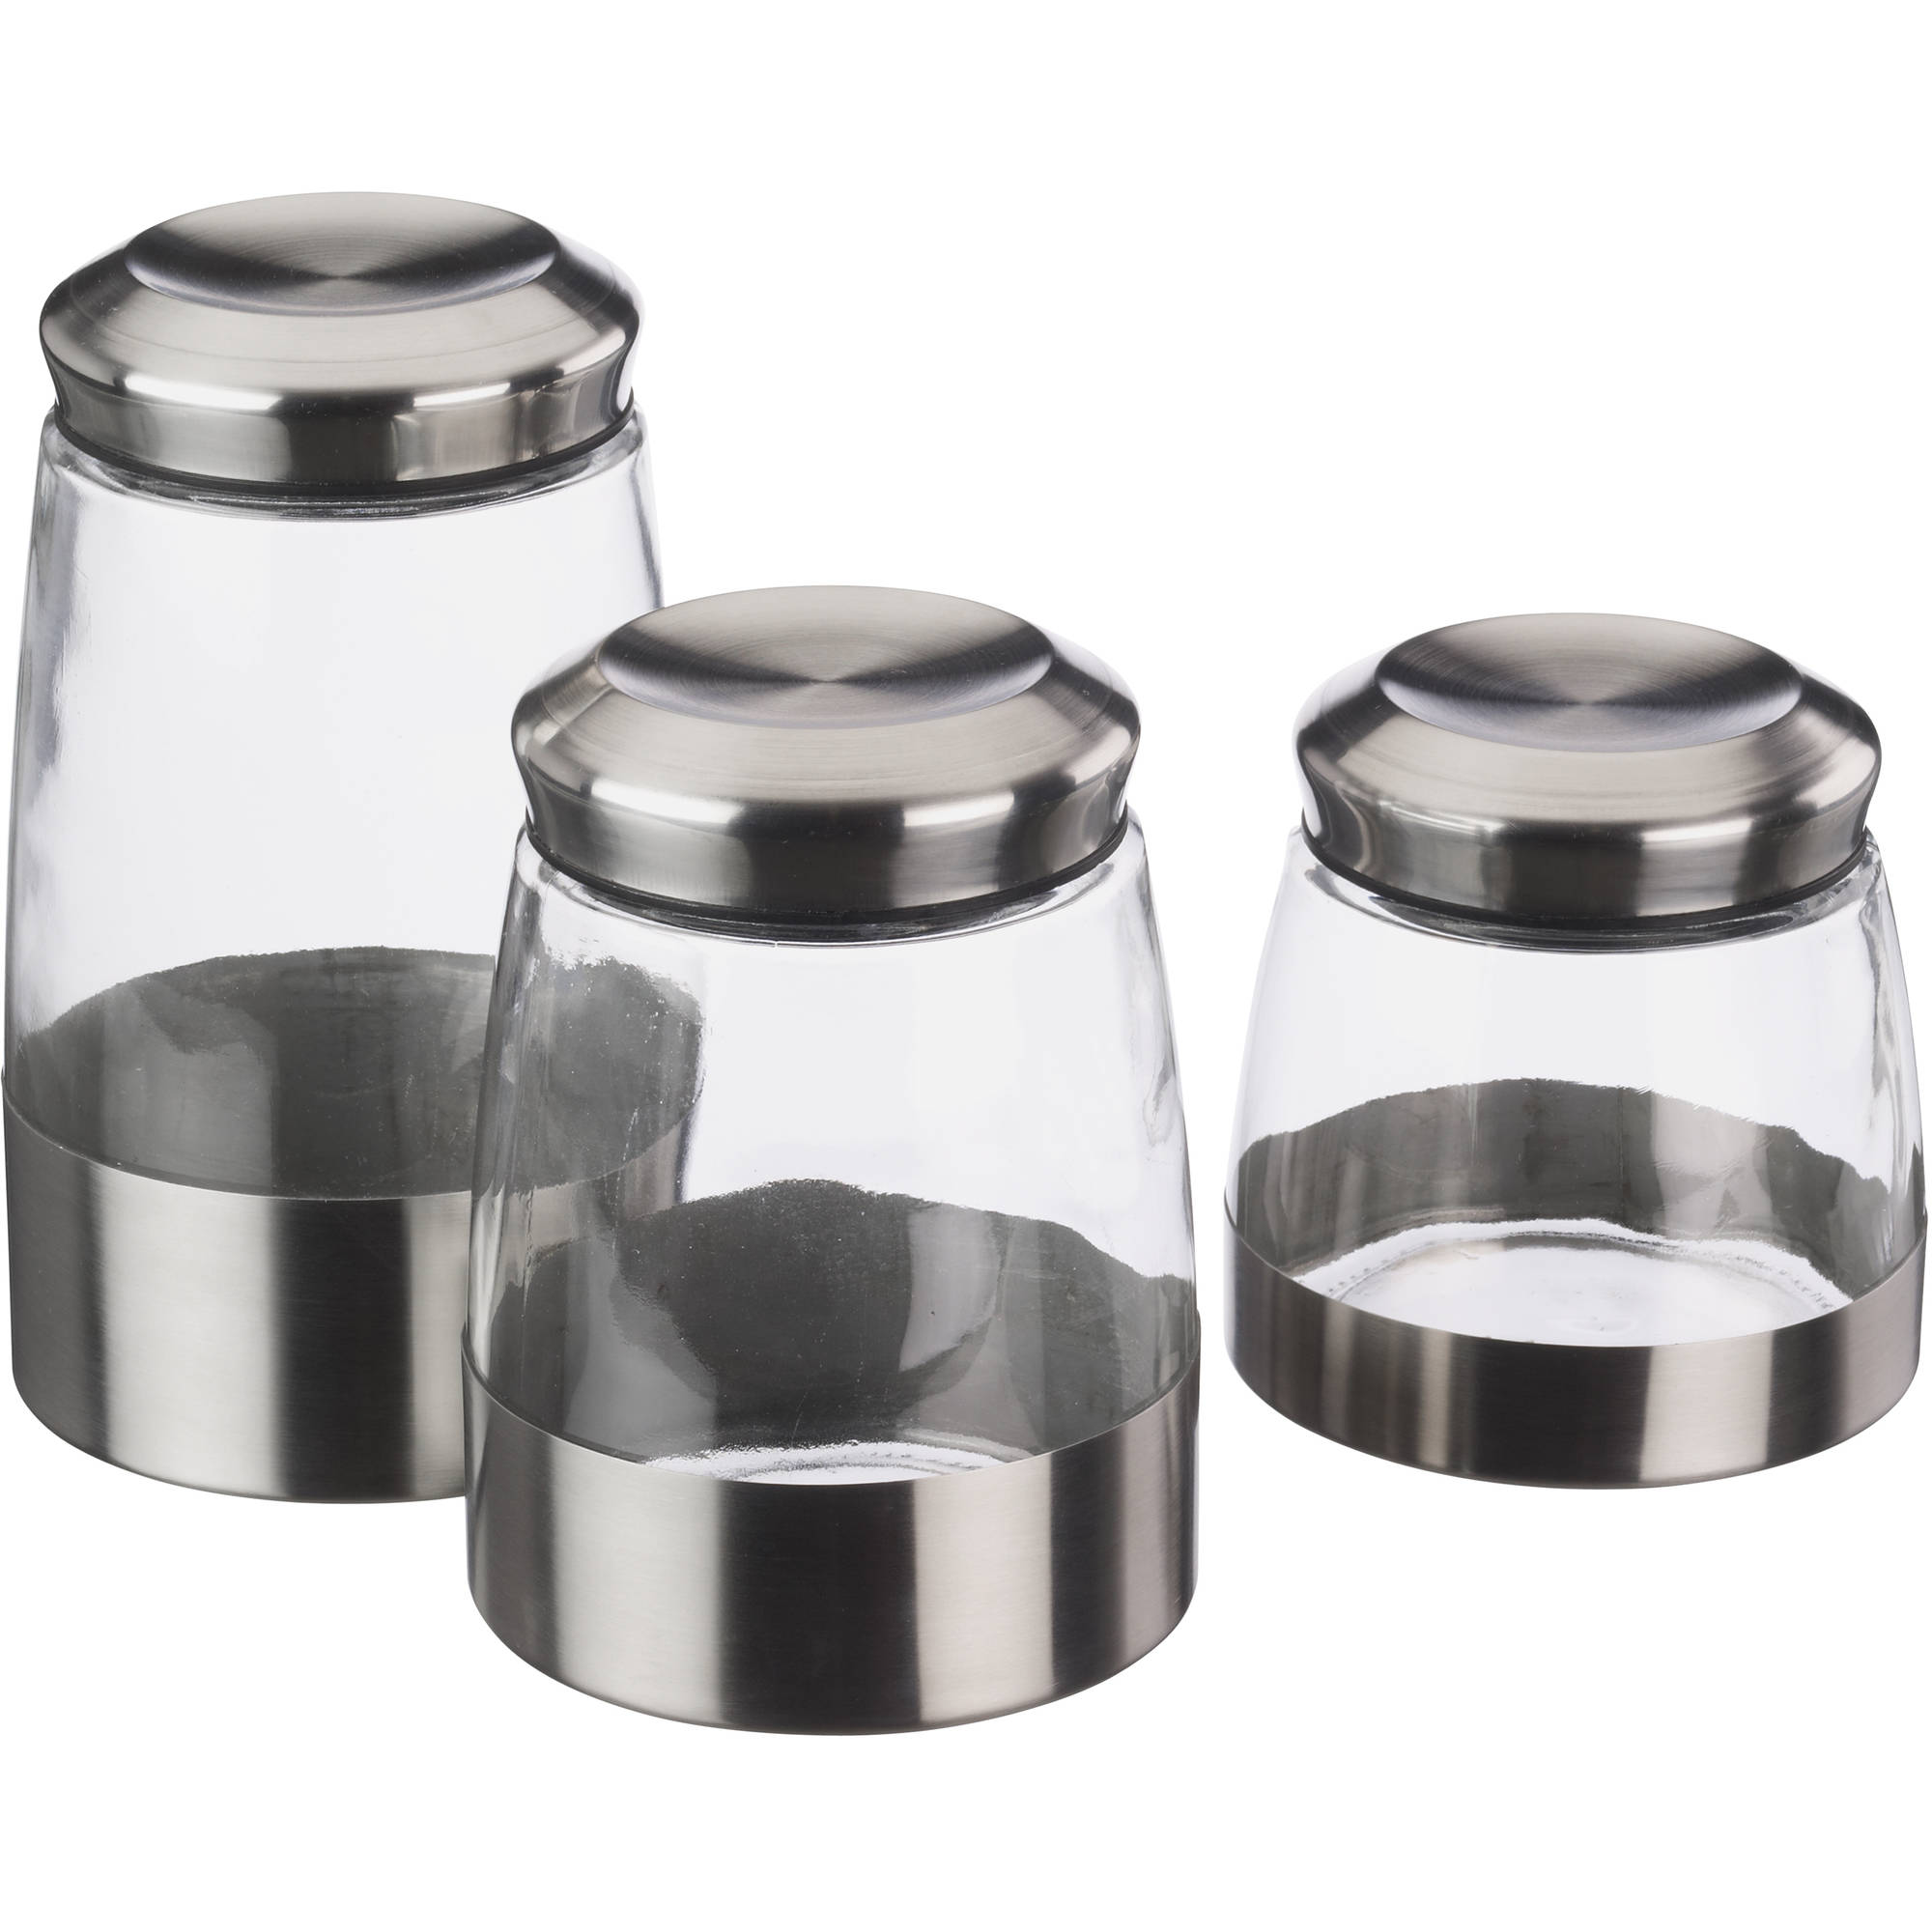 kitchen canister sets walmart mainstays 3 glass canister set walmart 19294